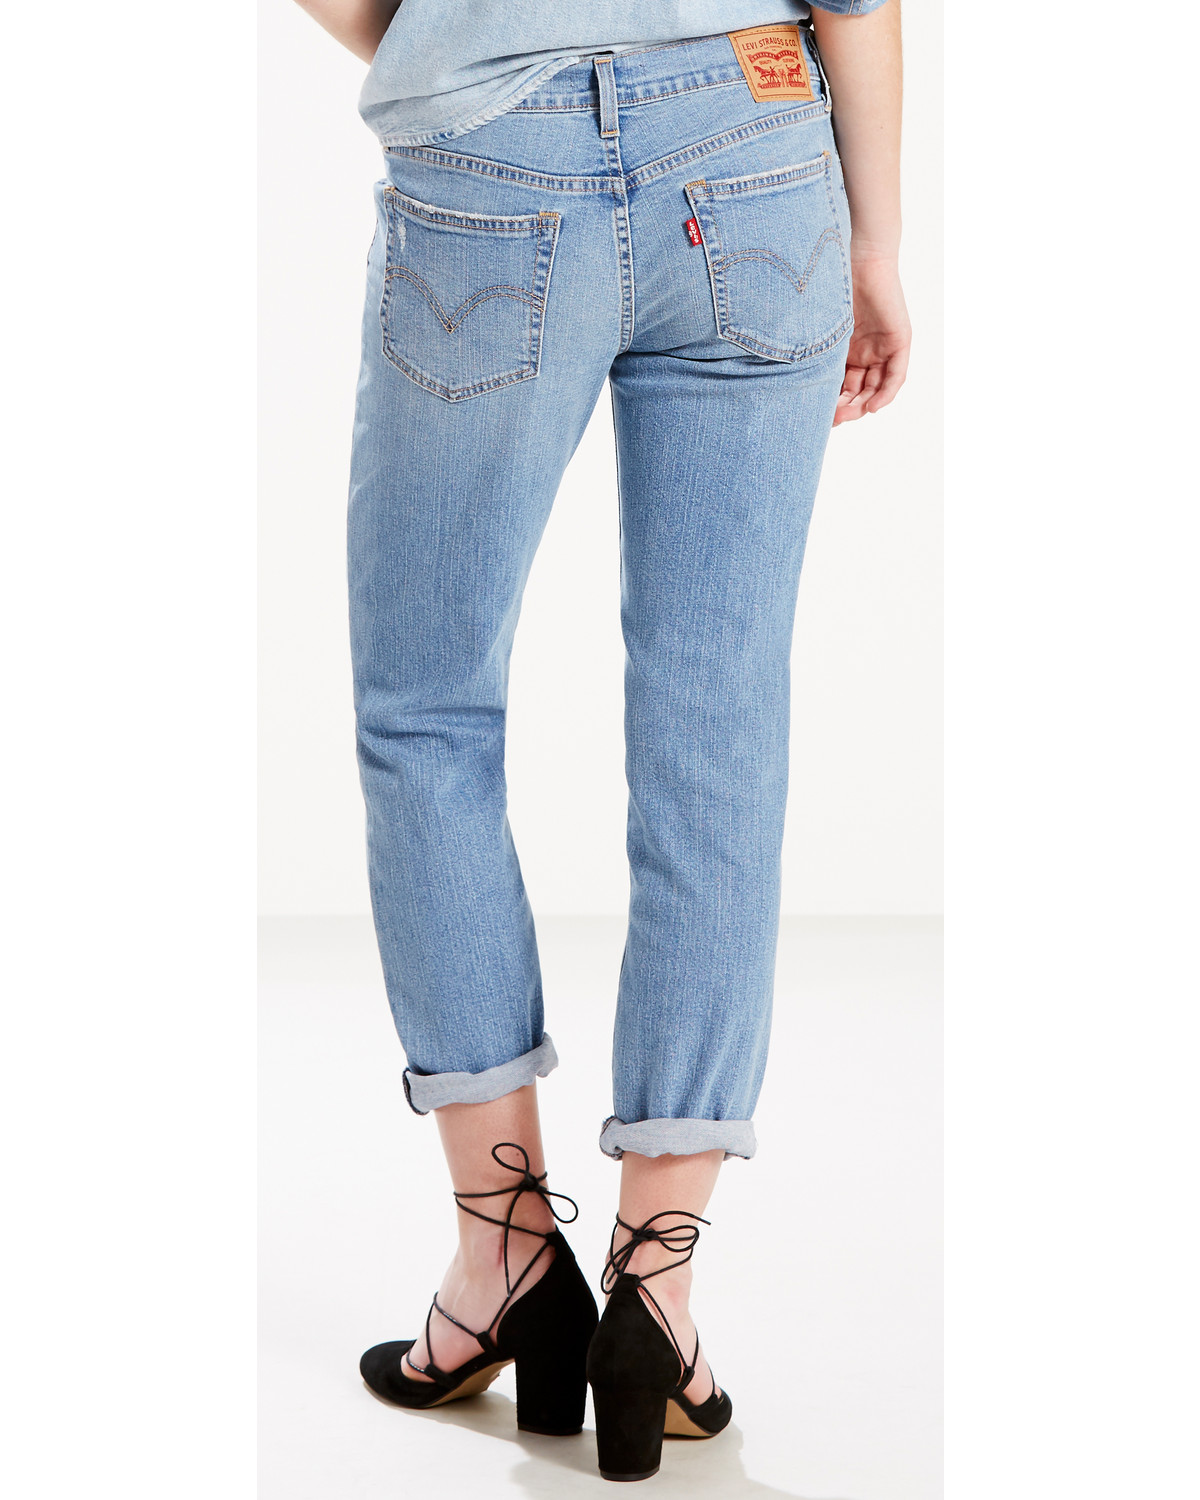 Find a great selection of boyfriend jeans for women at newuz.tk Shop top brands like NYDJ, AG, Levi's, Kut from the Kloth more. Free shipping & returns.